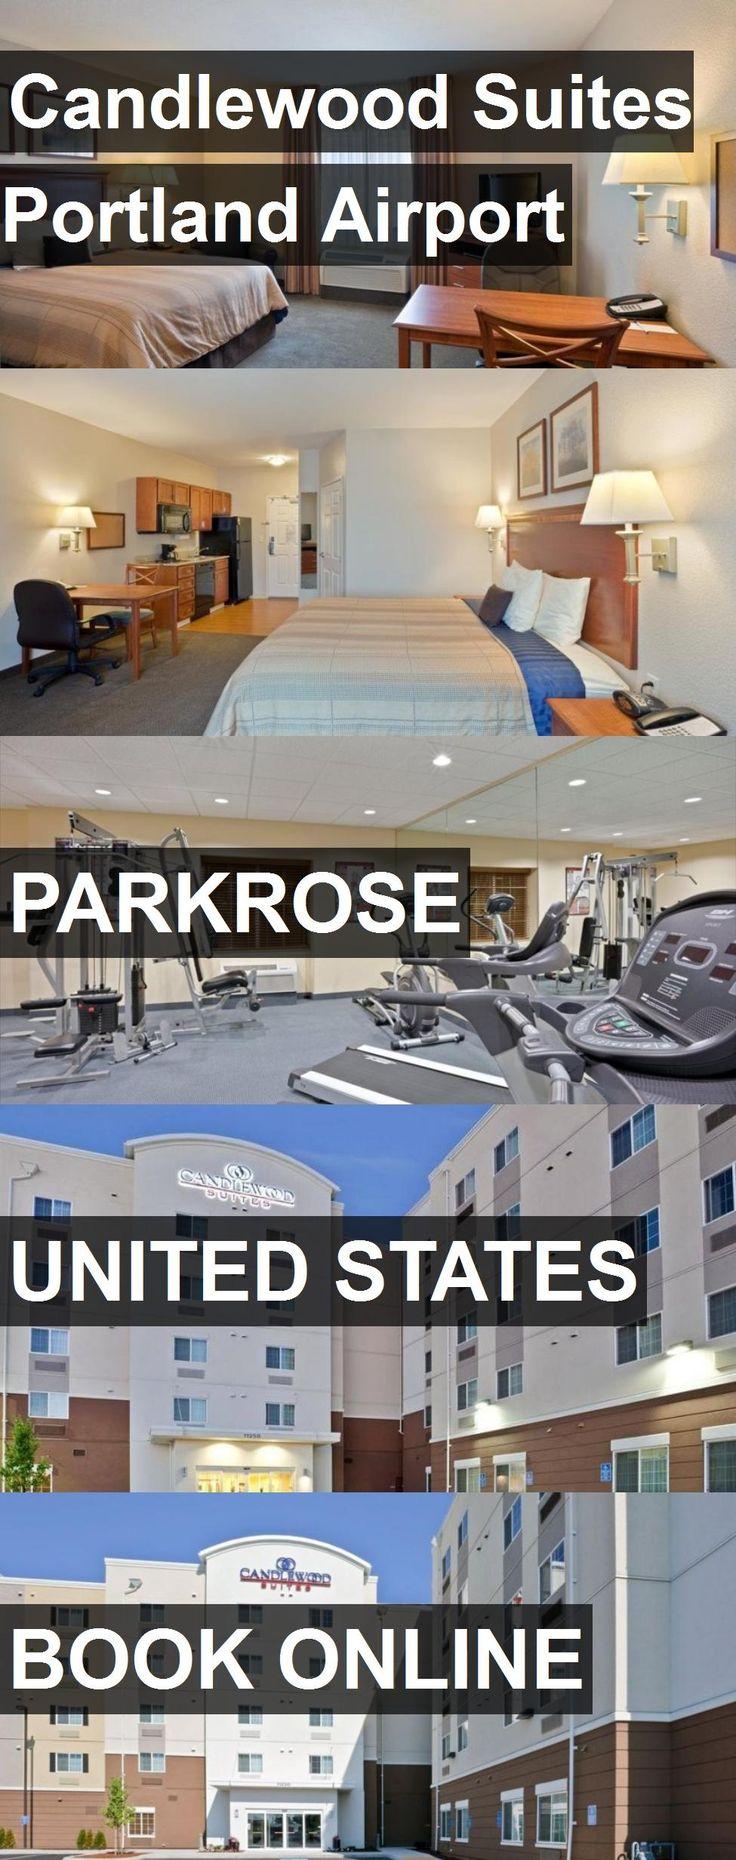 Hotel Candlewood Suites Portland Airport in Parkrose, United States. For more information, photos, reviews and best prices please follow the link. #UnitedStates #Parkrose #CandlewoodSuitesPortlandAirport #hotel #travel #vacation